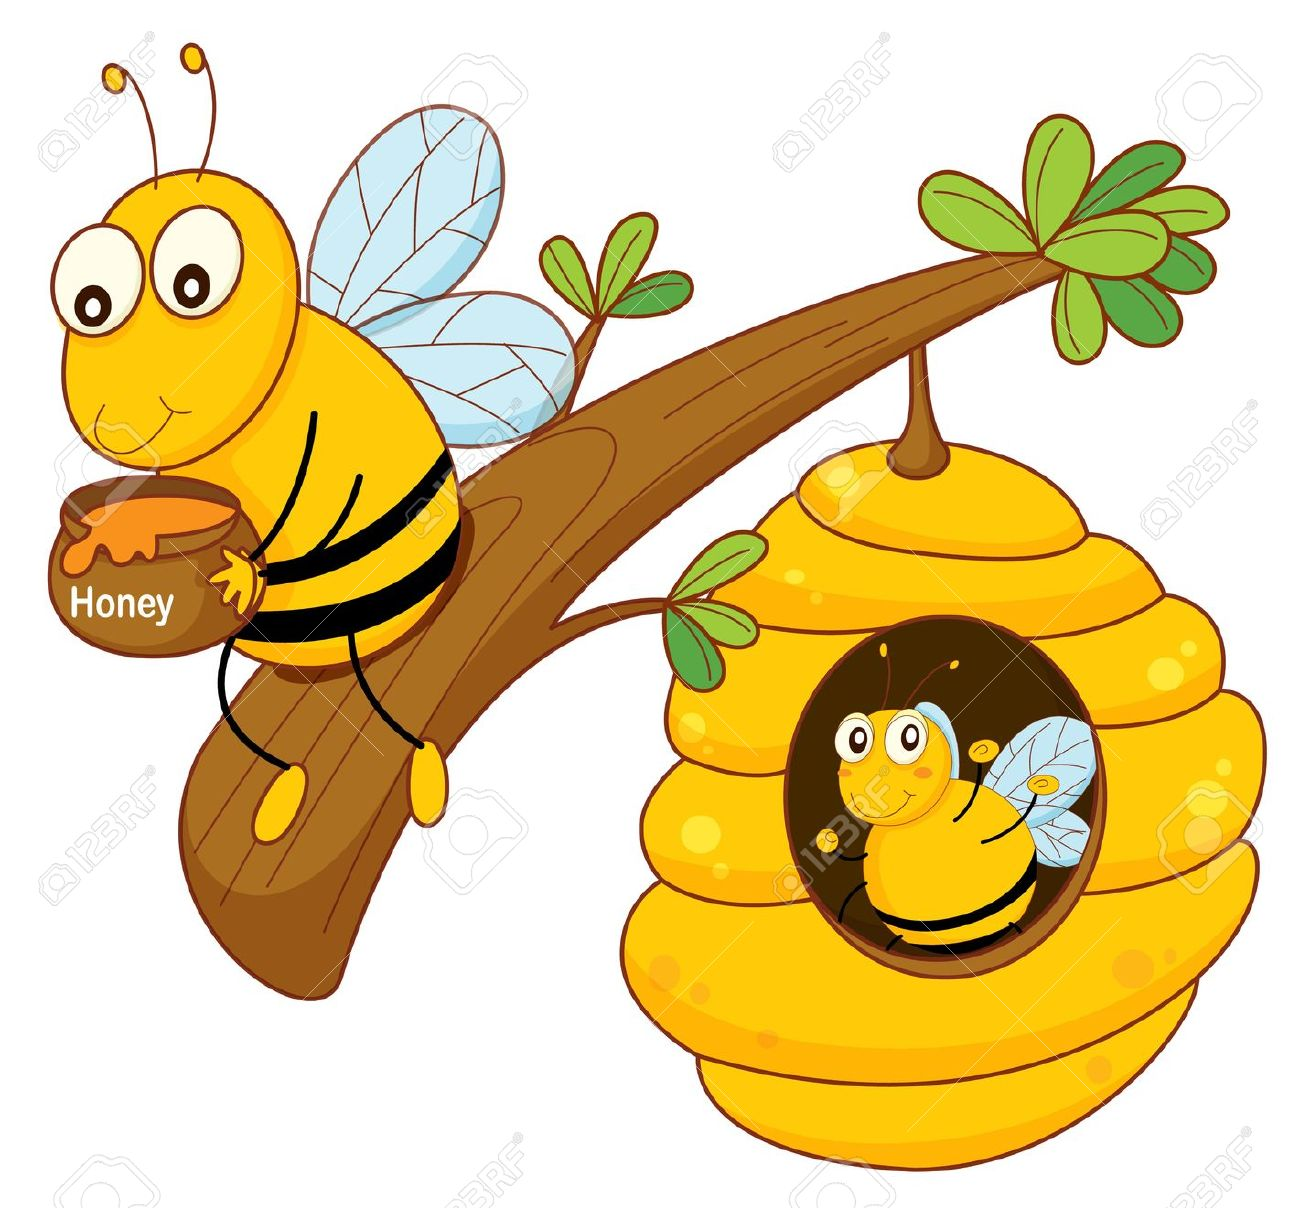 Honey nest clipart.